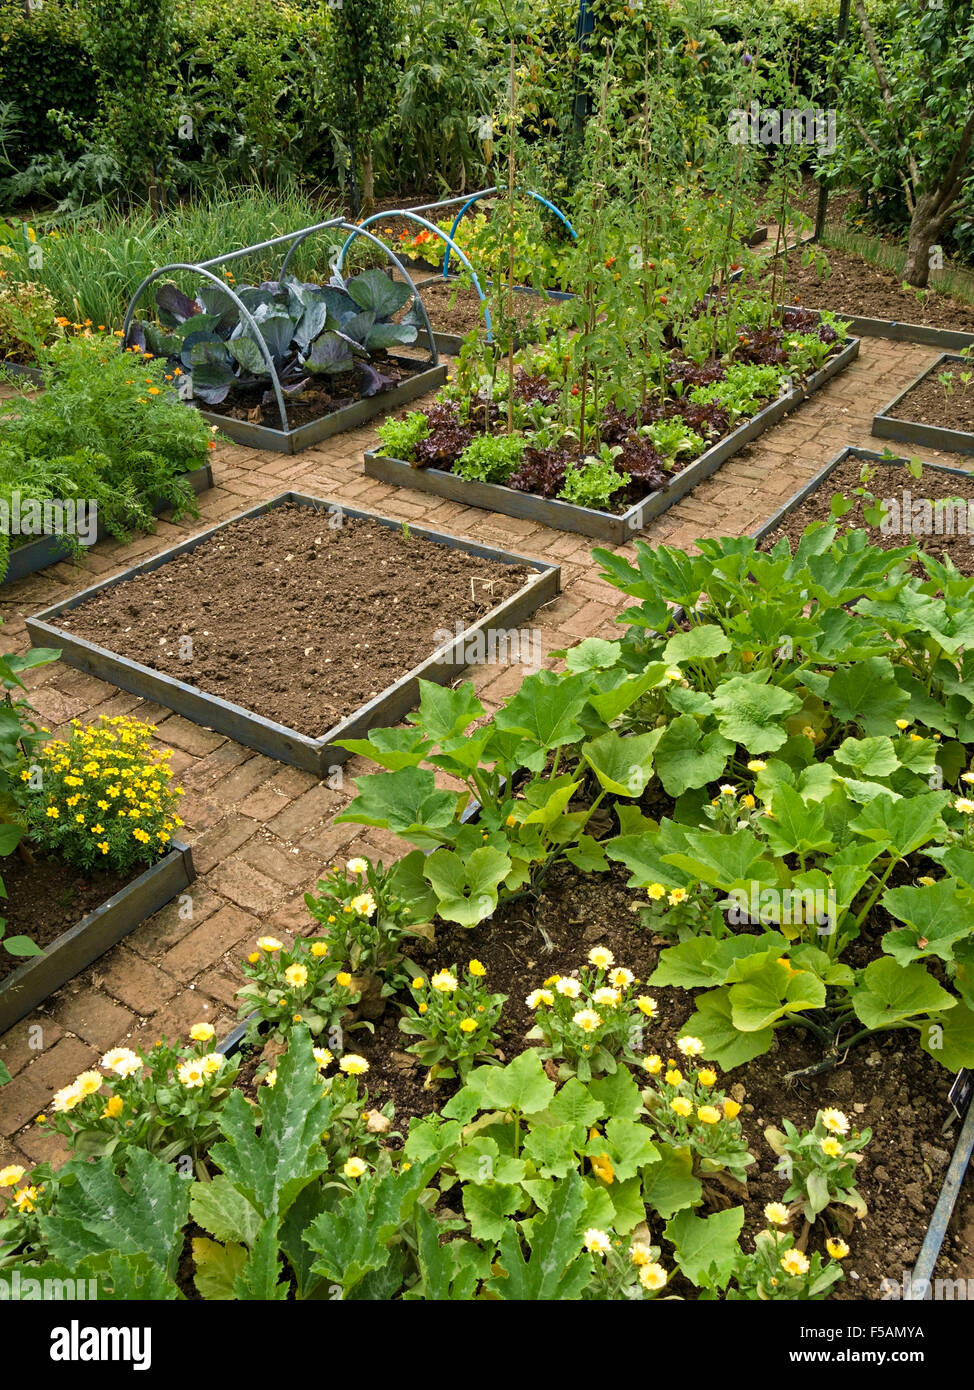 Cottage Vegetable Garden With Small Raised Beds And Brick Paved